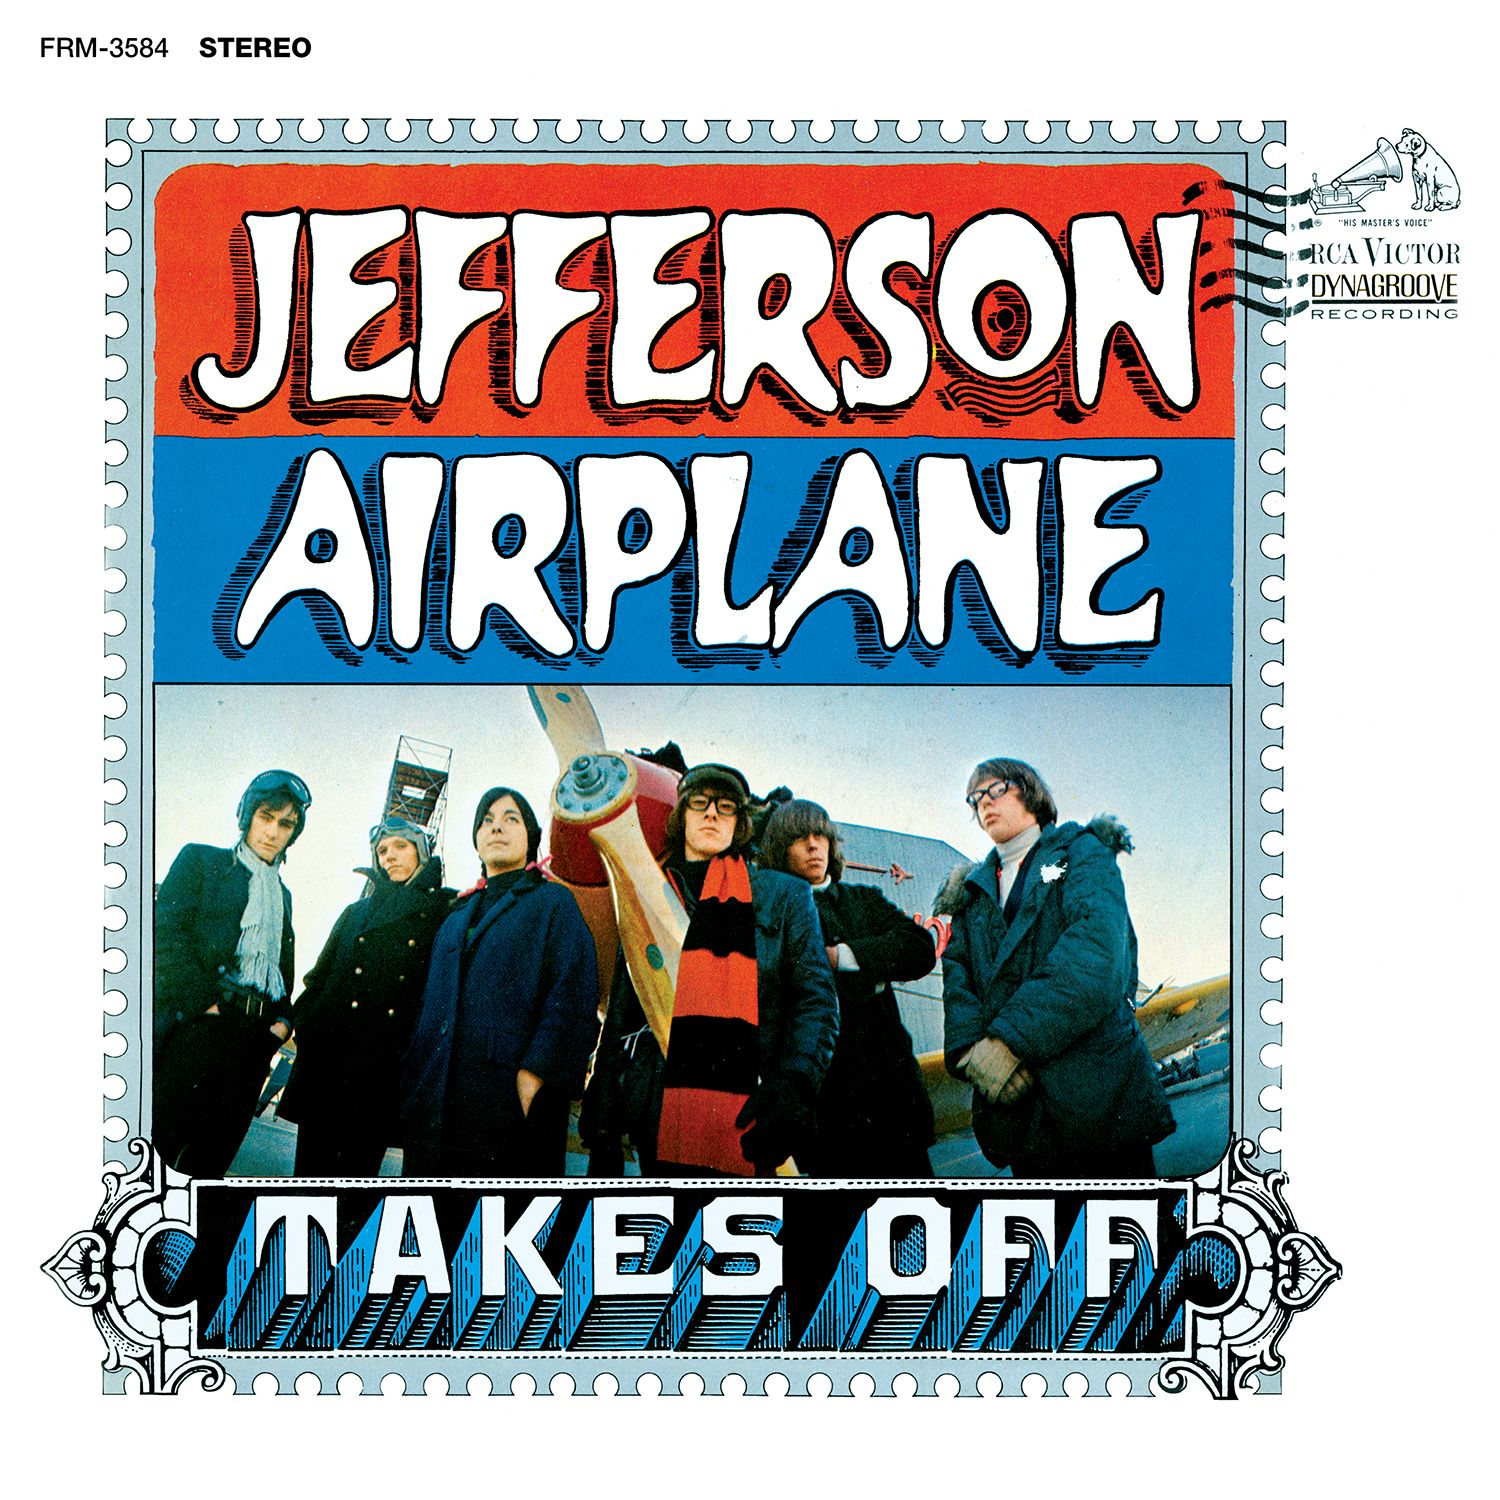 Jefferson Airplane - Takes Off (180 Gram Audiophile Tranluscent Blue Vinyl/Ltd. Anniversary Edition/Gatefold Cover)